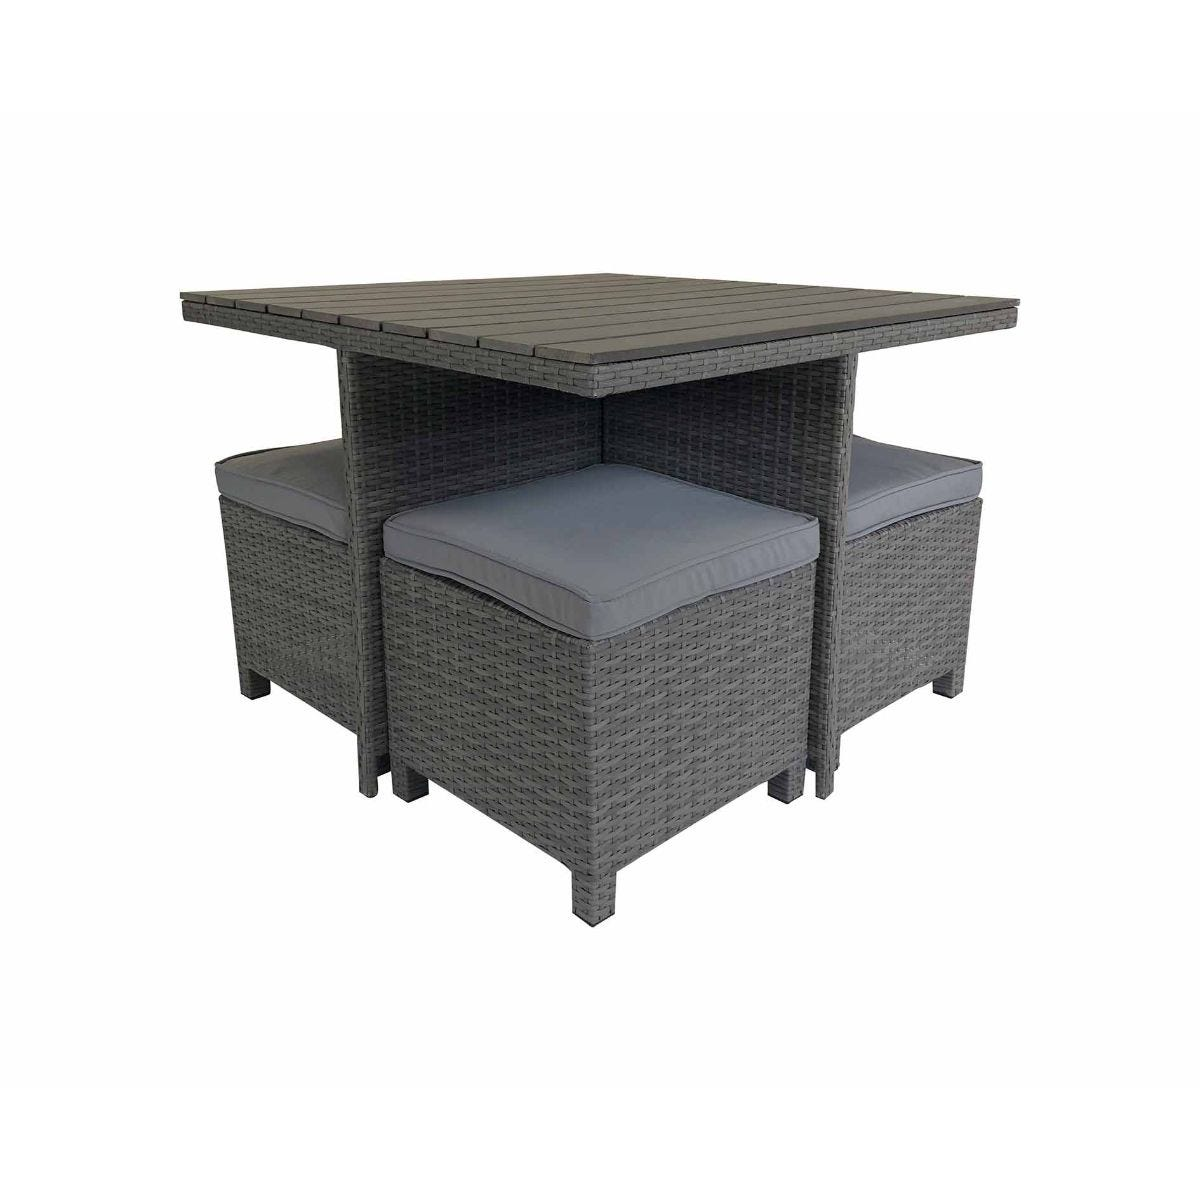 Charles Bentley Garden Rattan Polywood Cube 4 Seater Dining Set, Grey